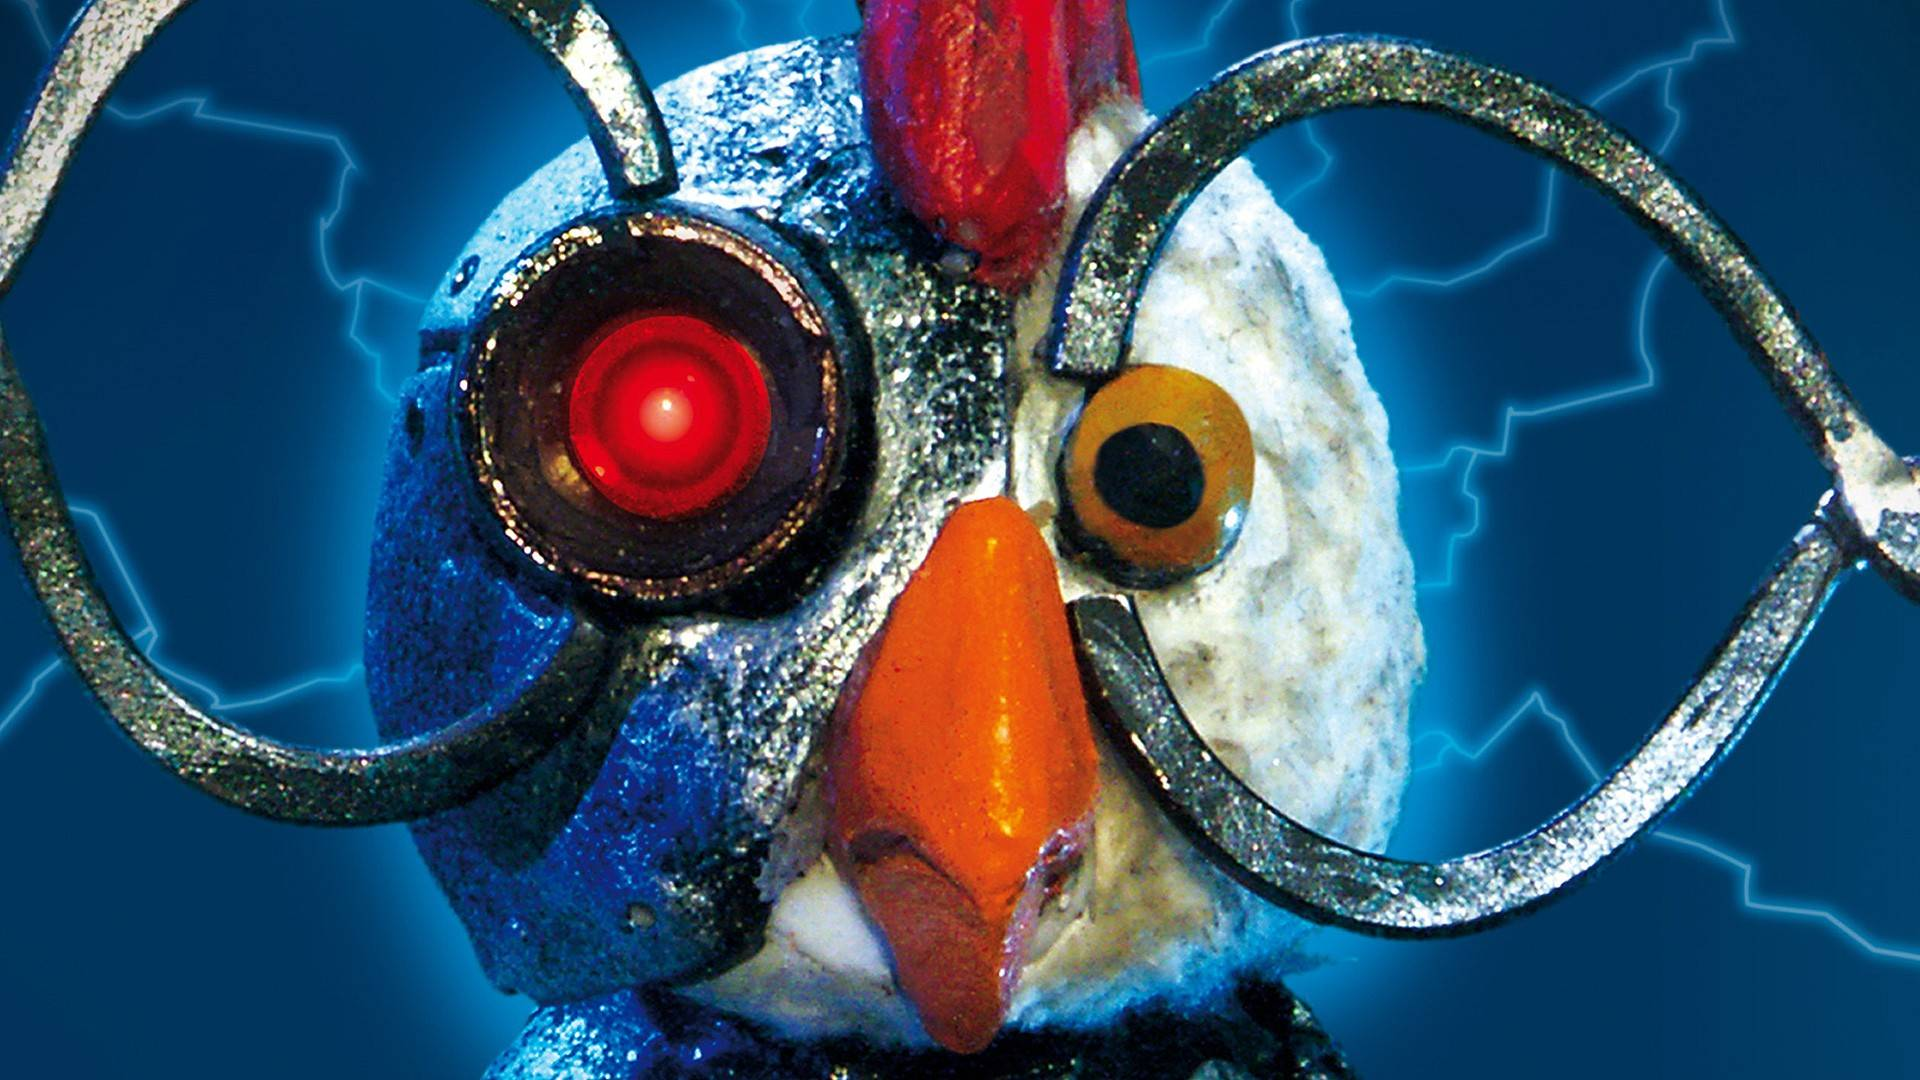 Robot Chicken Hd Wallpapers For Desktop Download